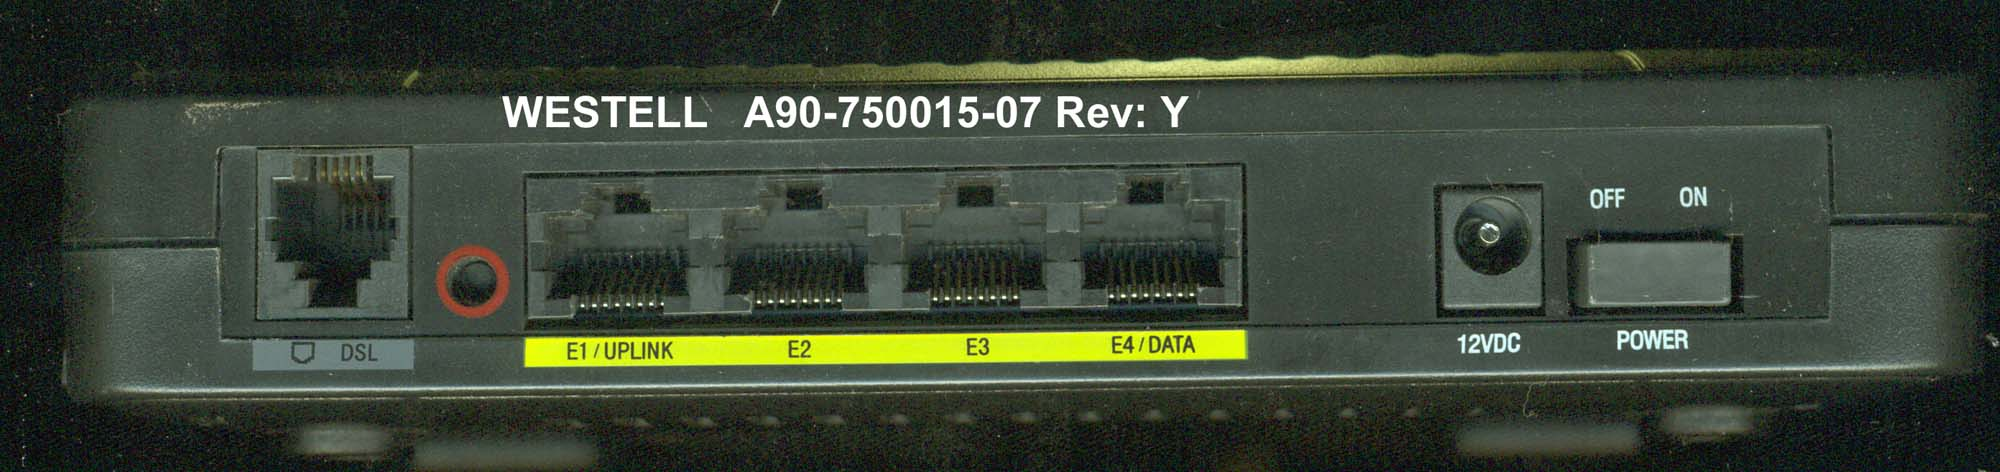 Solved: Westell A90-750015-07 as a wireless router w/o use ...